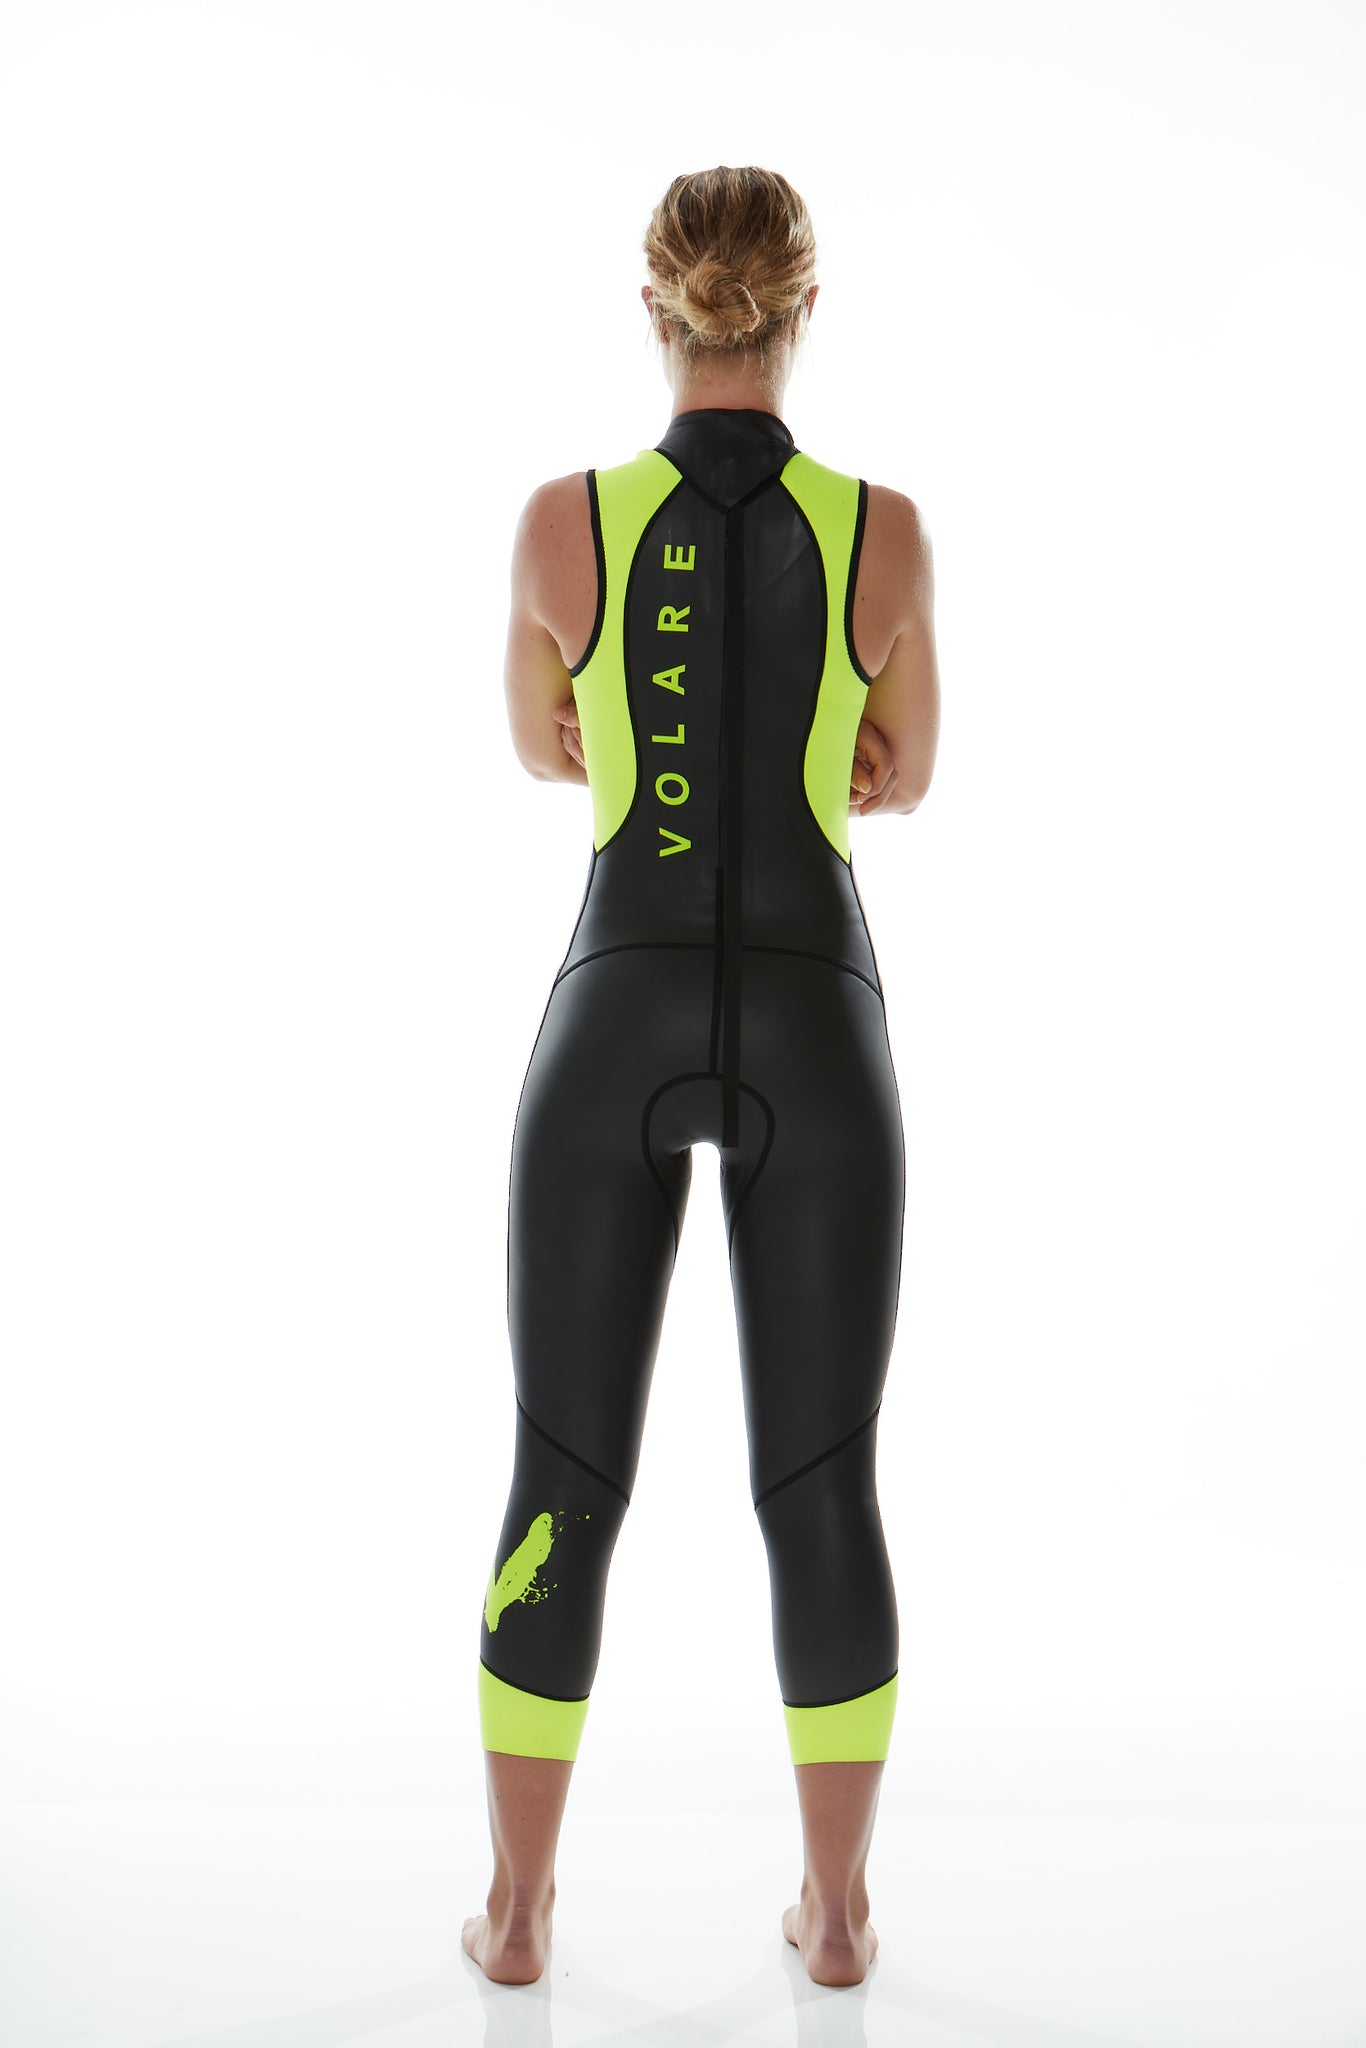 OUTLET V1 Sleeveless Womens Wetsuit